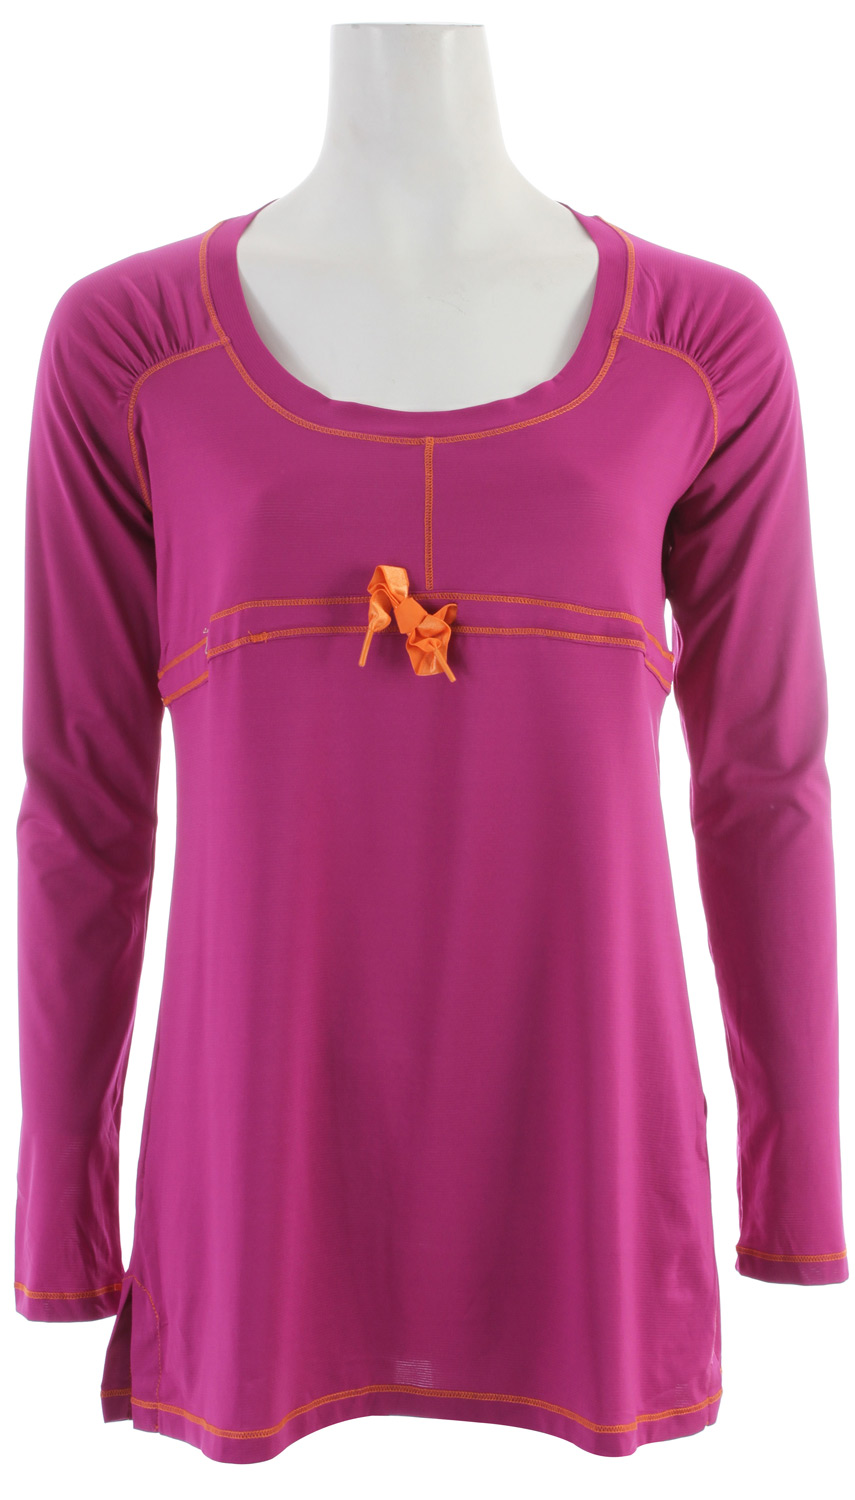 Prana Felicity Top Berry - $38.95